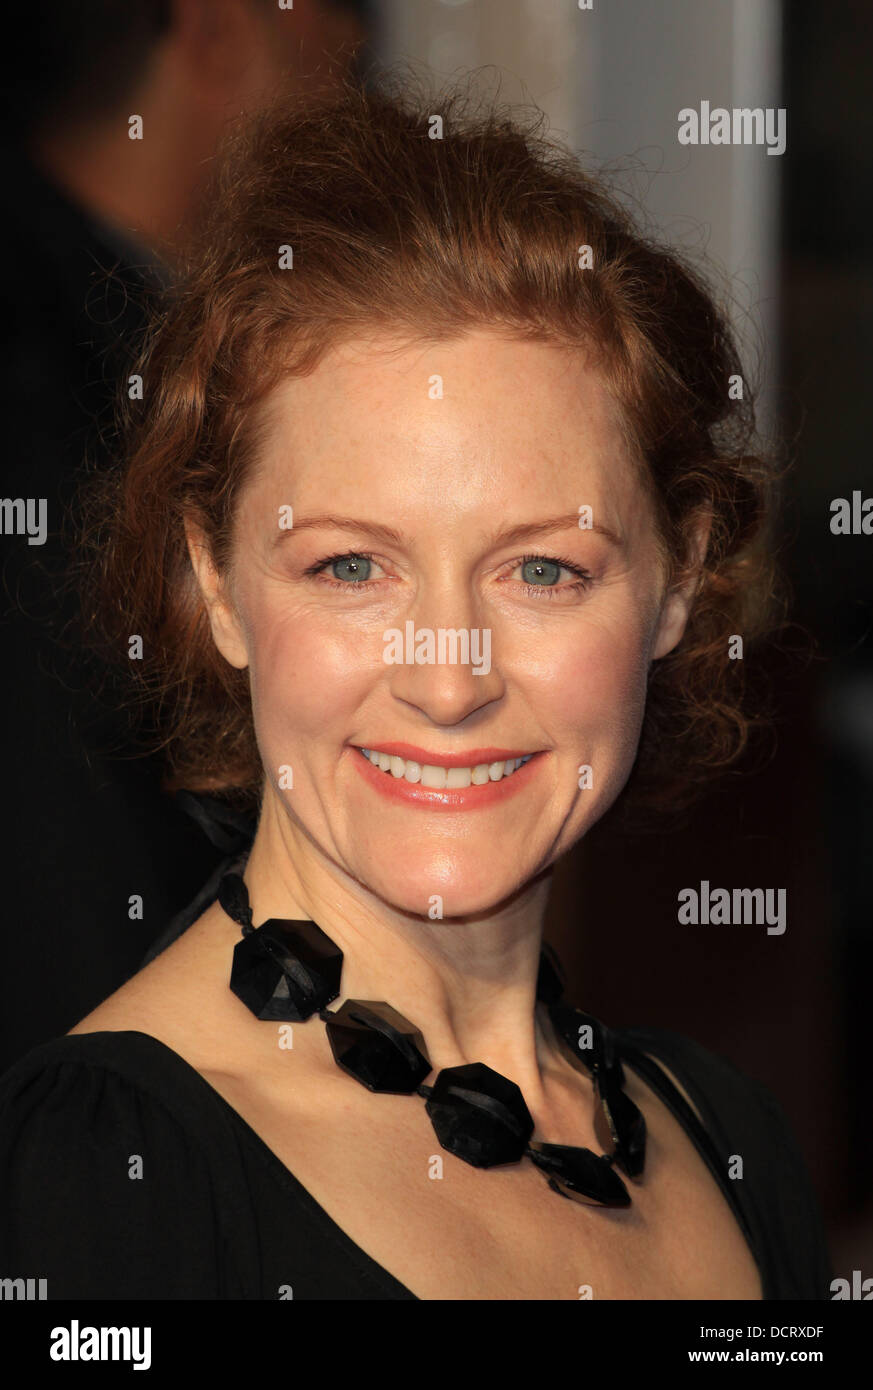 Geraldine Somerville nudes (78 foto and video), Sexy, Leaked, Boobs, bra 2018